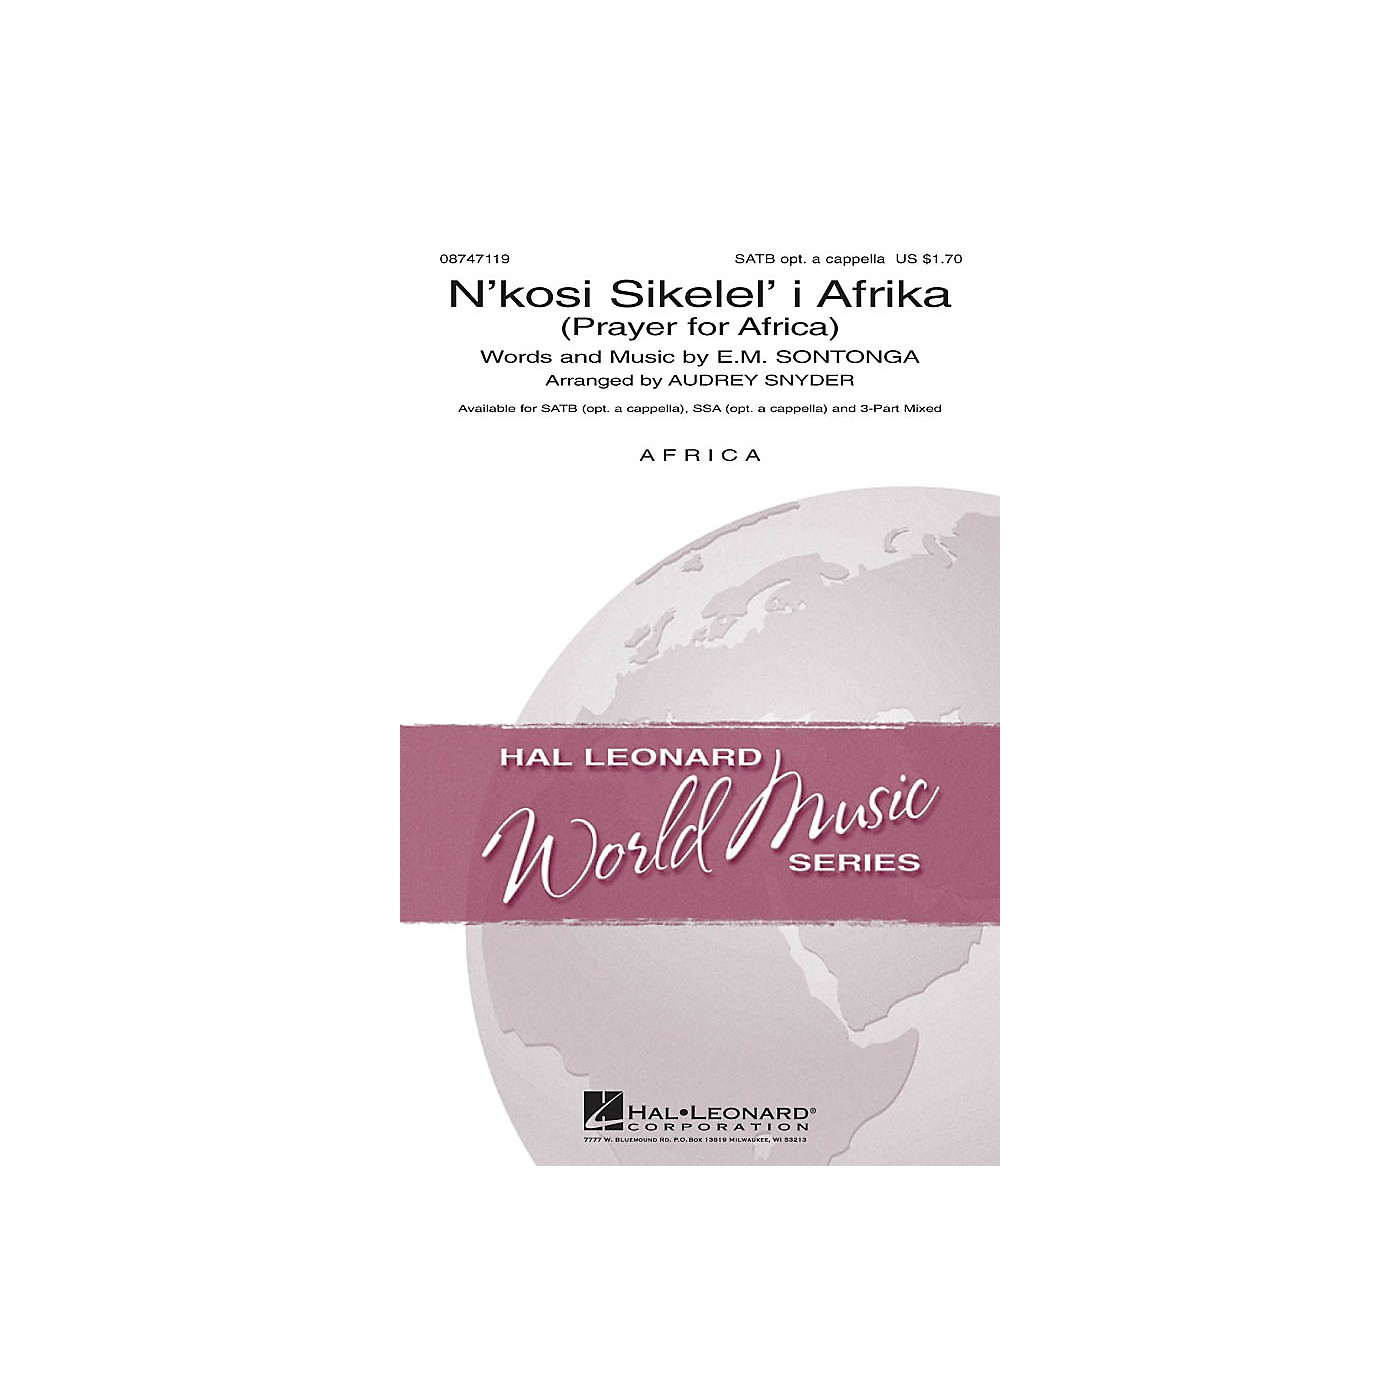 Hal Leonard N'kosi Sikelel' I Afrika (Prayer for Africa) 3-Part Mixed Arranged by Audrey Snyder thumbnail